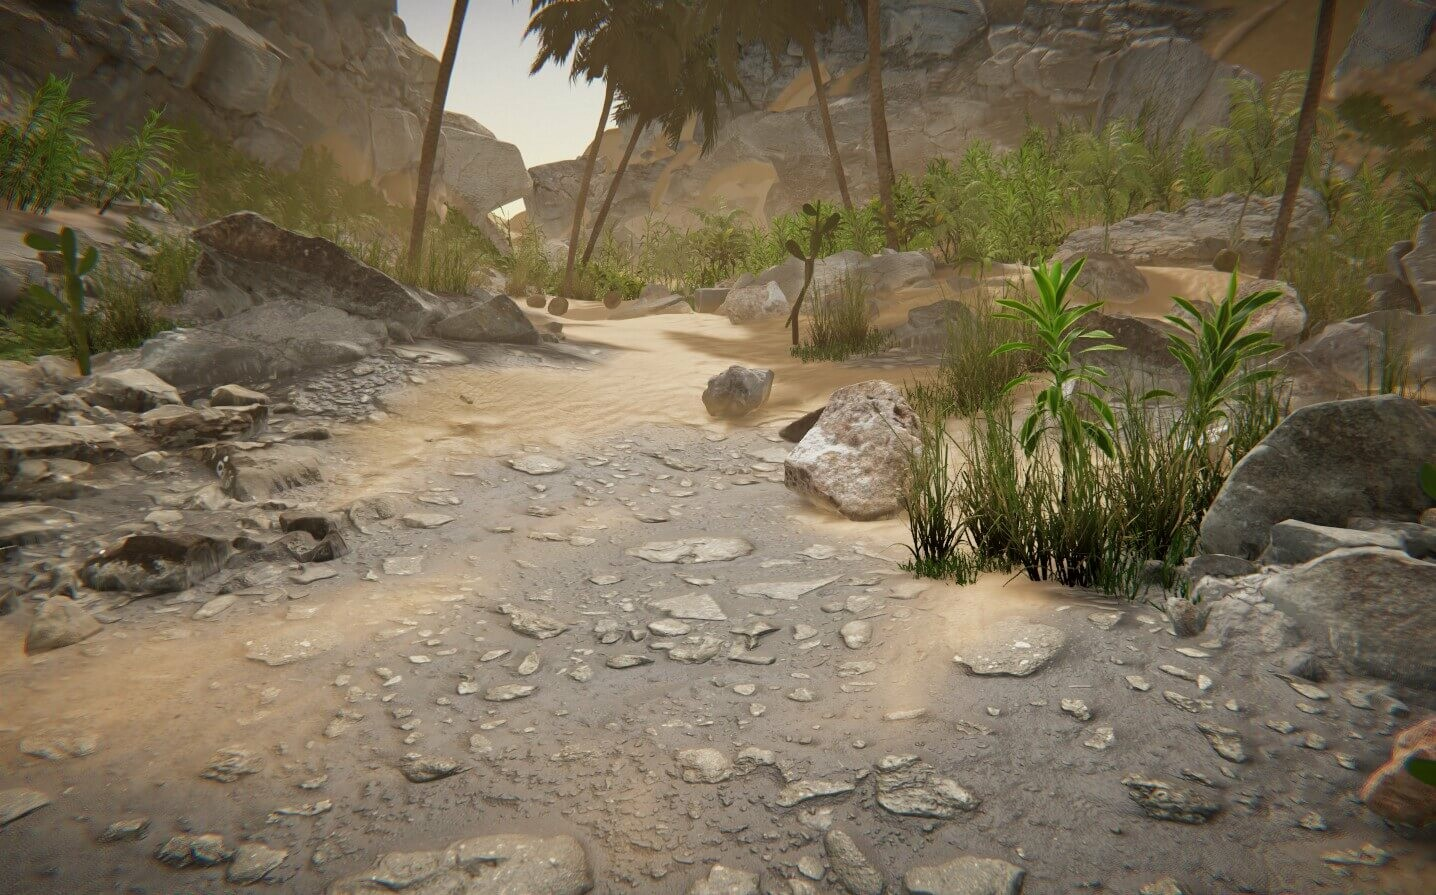 Game Ready Environment - Universal Render Pipeline - Unity